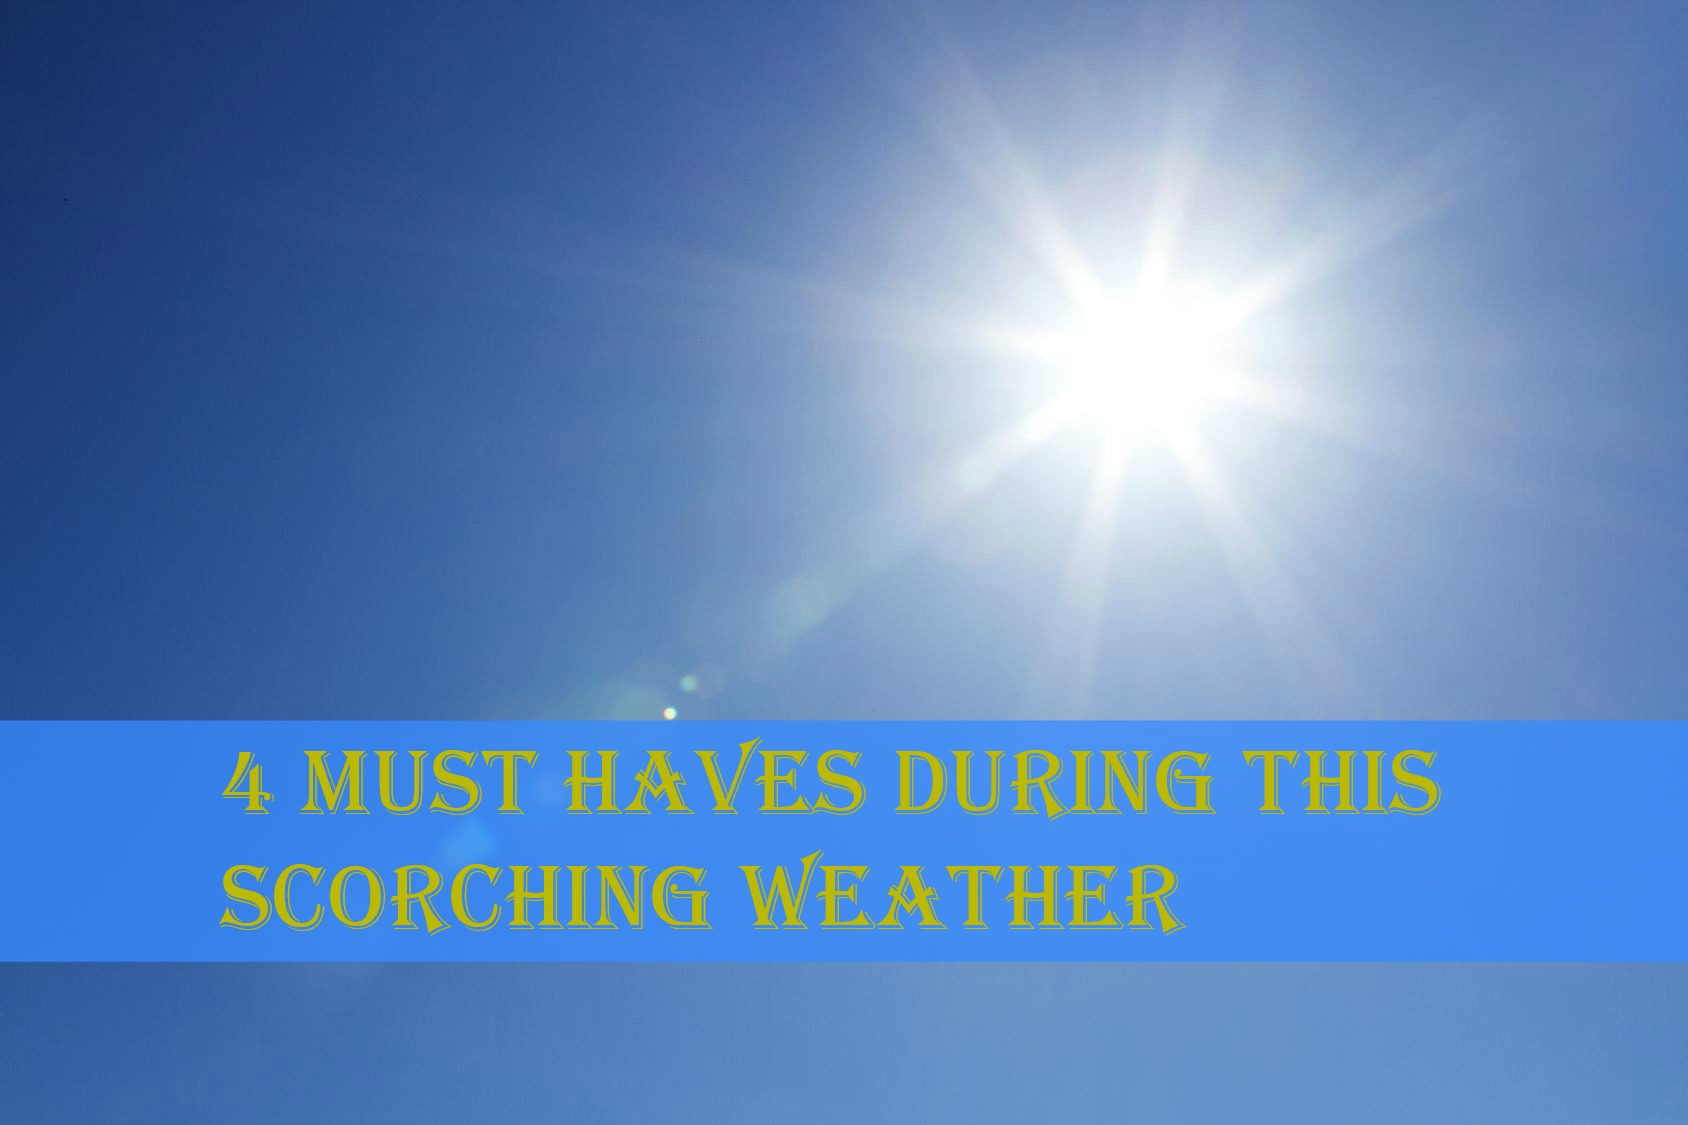 4 Must Haves During This Scorching Weather